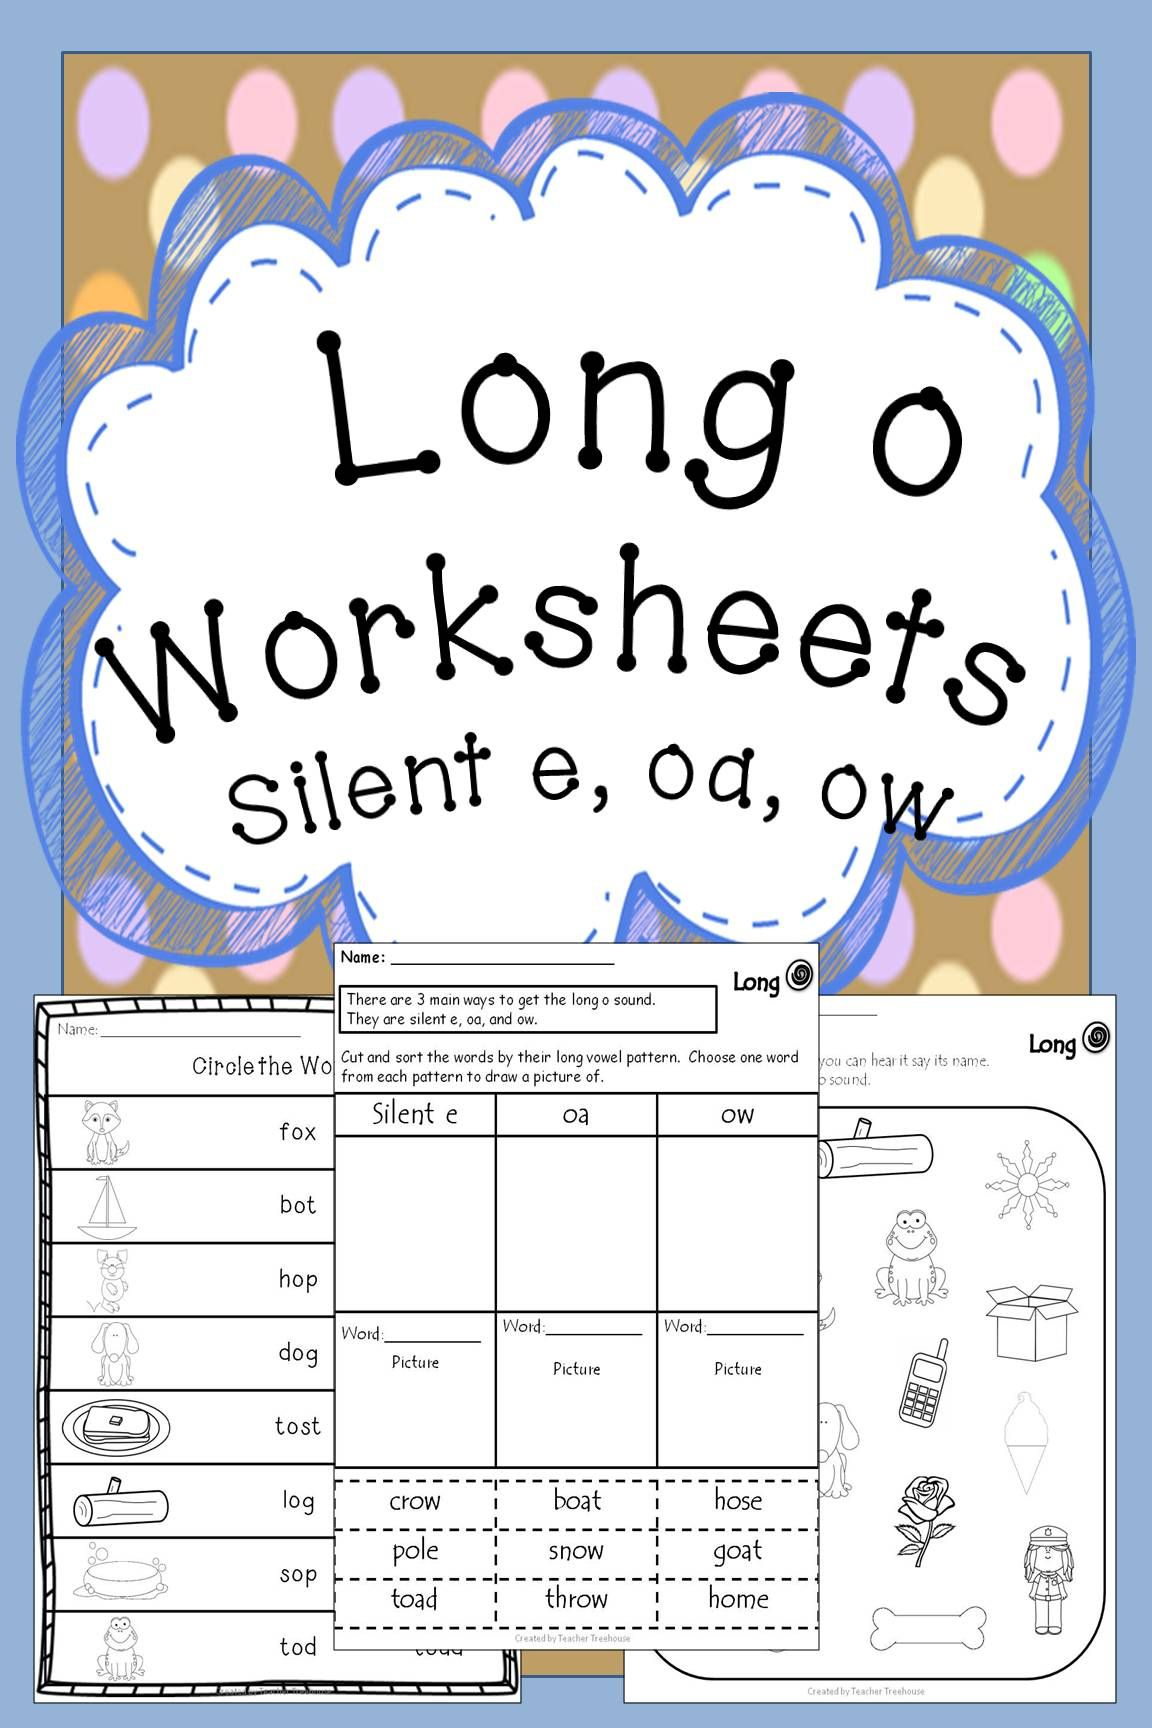 Worksheets Silent E Worksheets long o worksheets spelling patterns and language arts 10 practicing common silent e oa ow